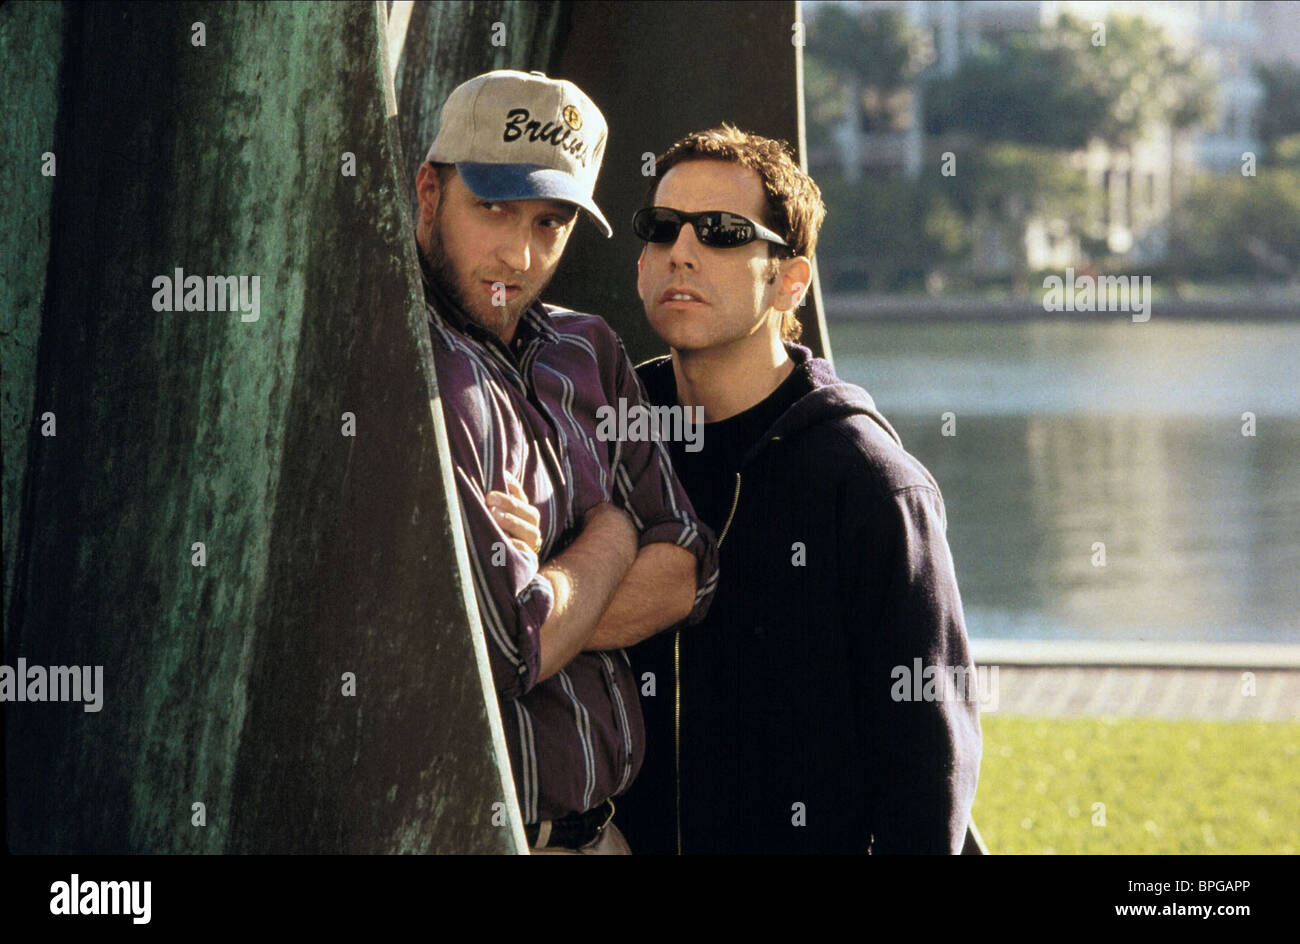 CHRIS ELLIOTT, BEN STILLER, THERE'S SOMETHING ABOUT MARY, 1998 - Stock Image